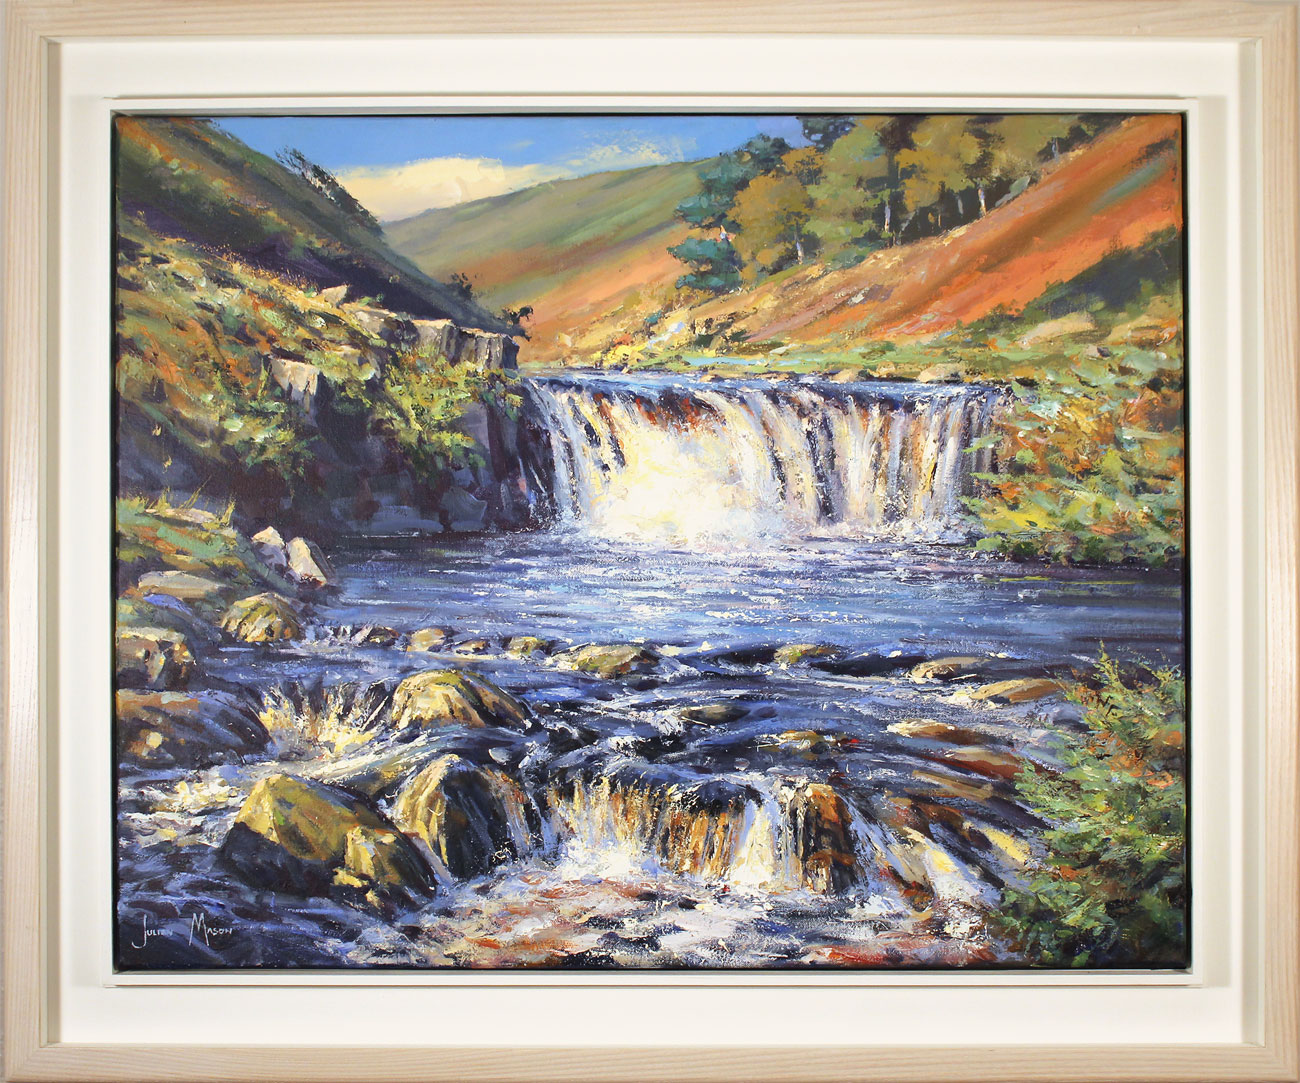 Julian Mason, Original oil painting on canvas, After the Rain, Three Shires Head, click to enlarge